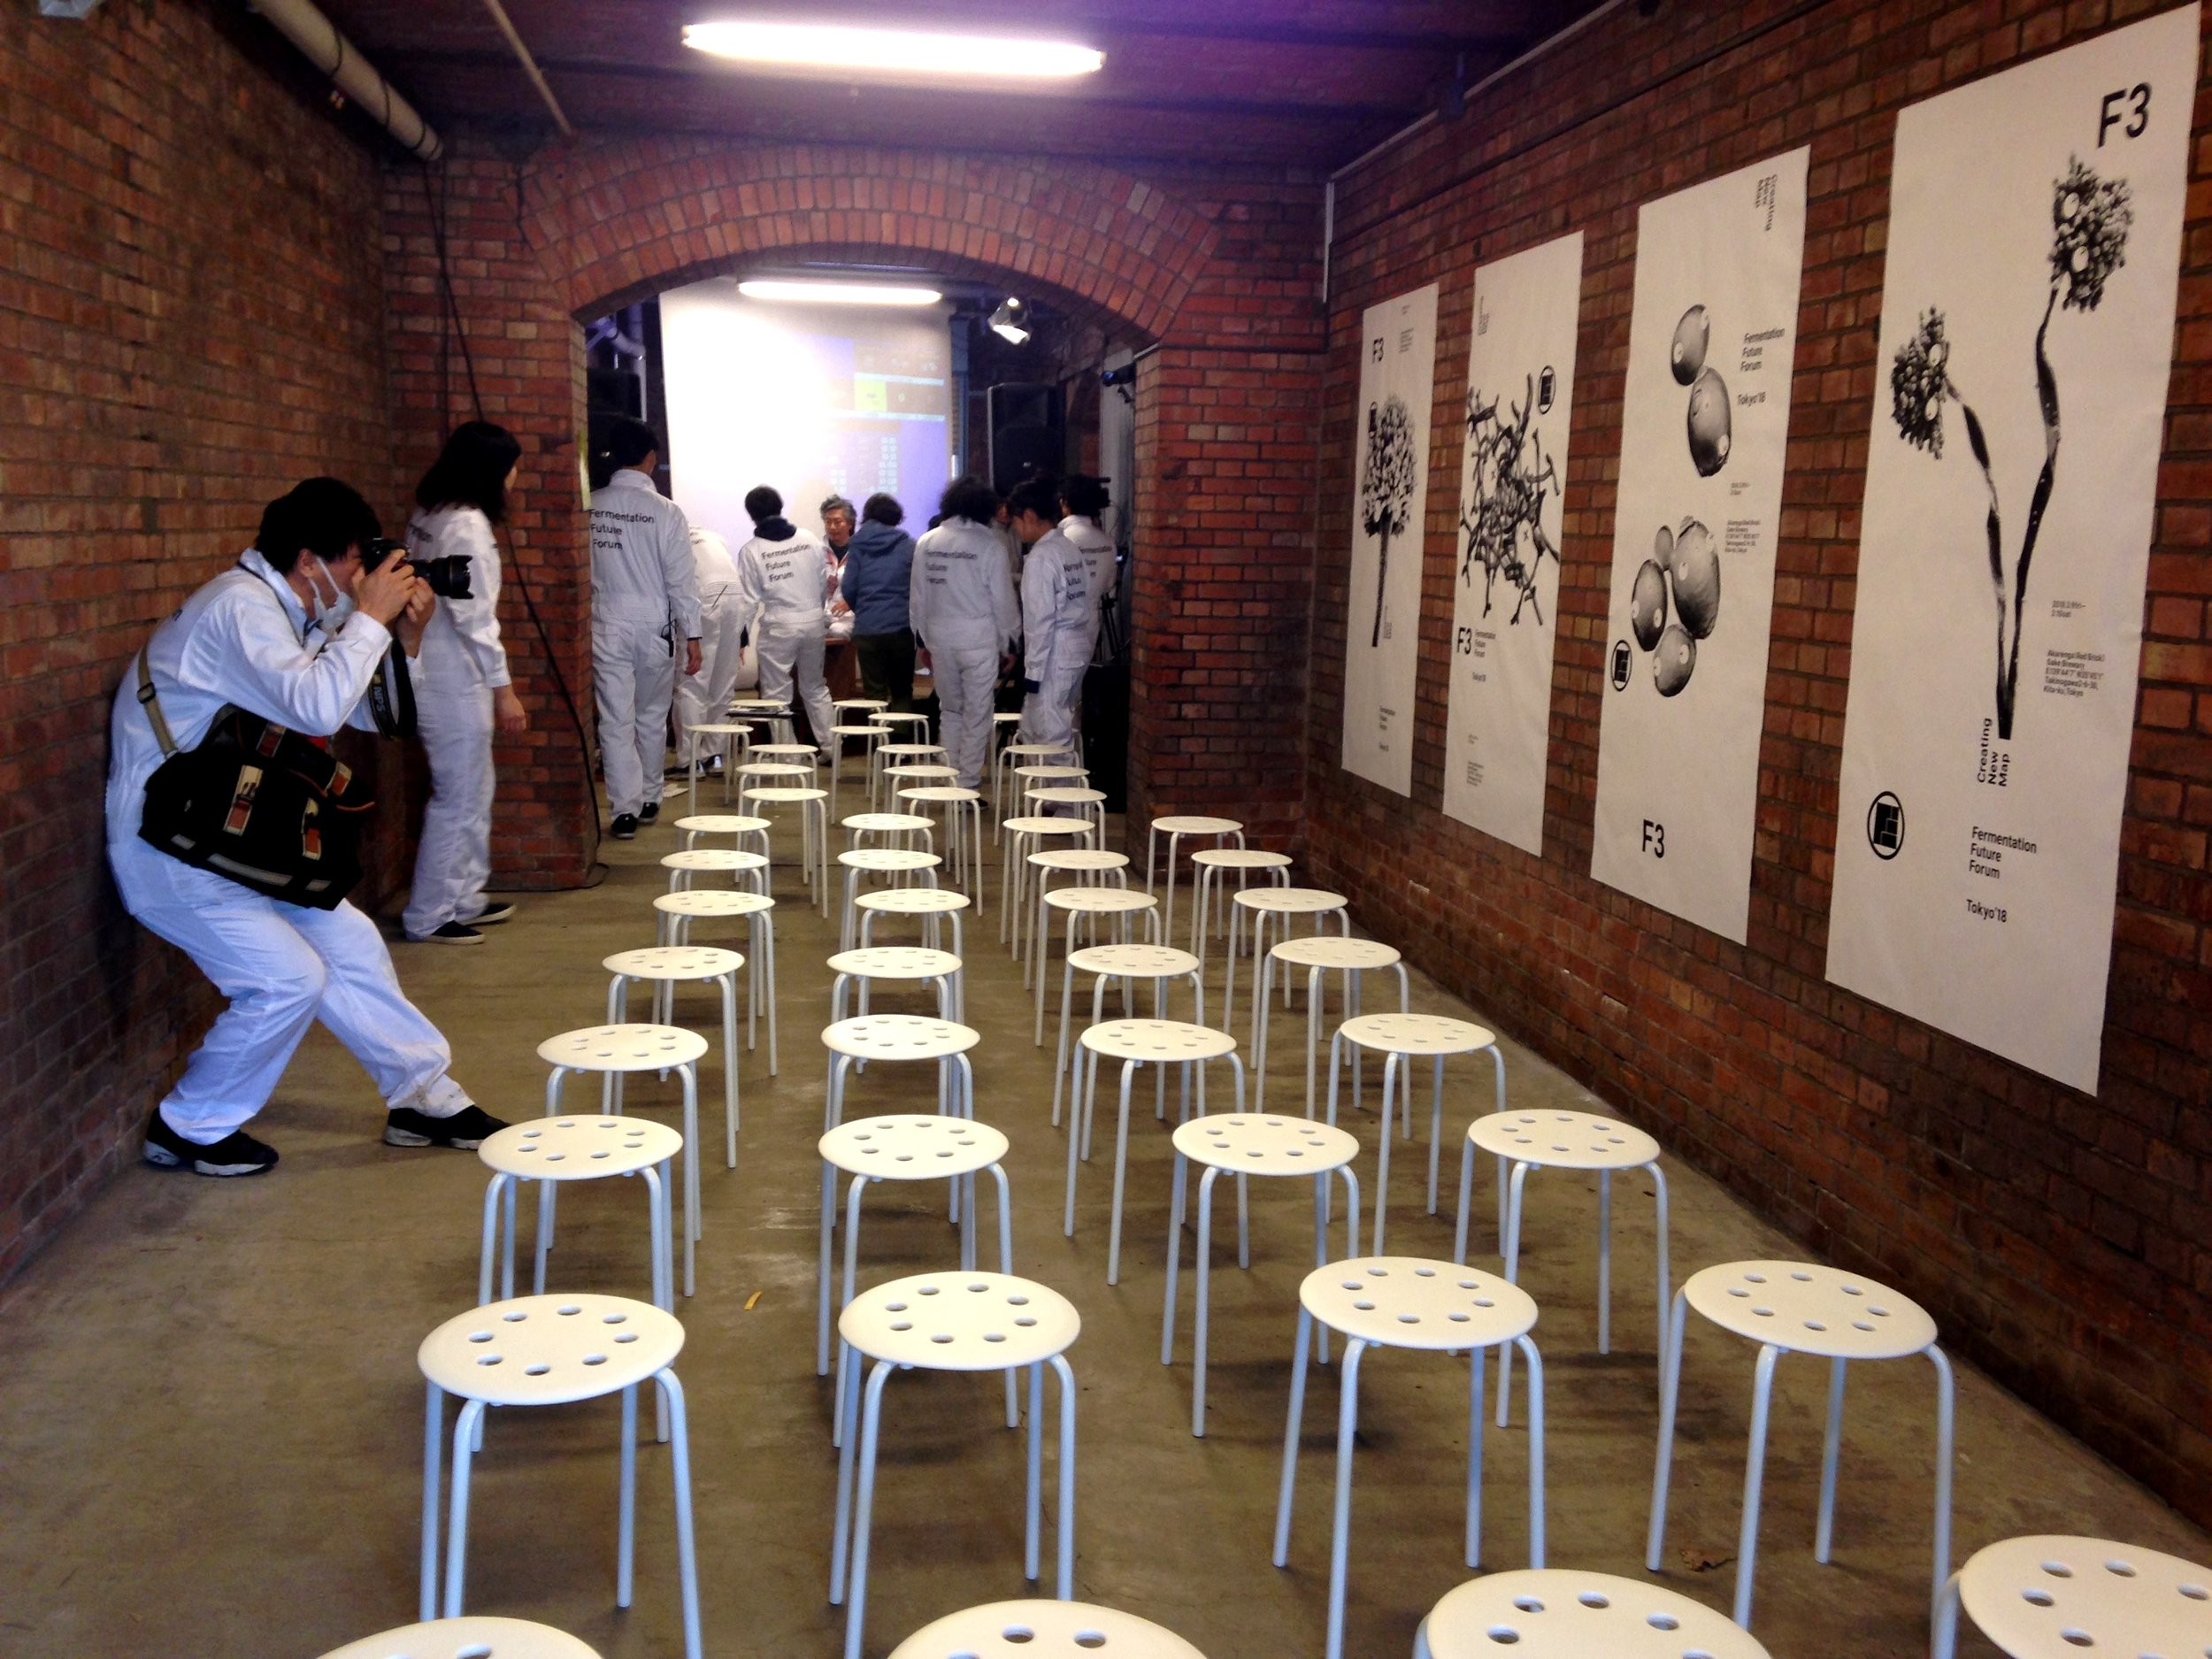 Right when Nhhmbase was done F3 staff swooped in and got the space ready for the next few talks with Shohei Yasuda of Restaurant Kabi, Shinobu Namae of L'Effervescence and other inspiring folks speaking to all things fermentation.